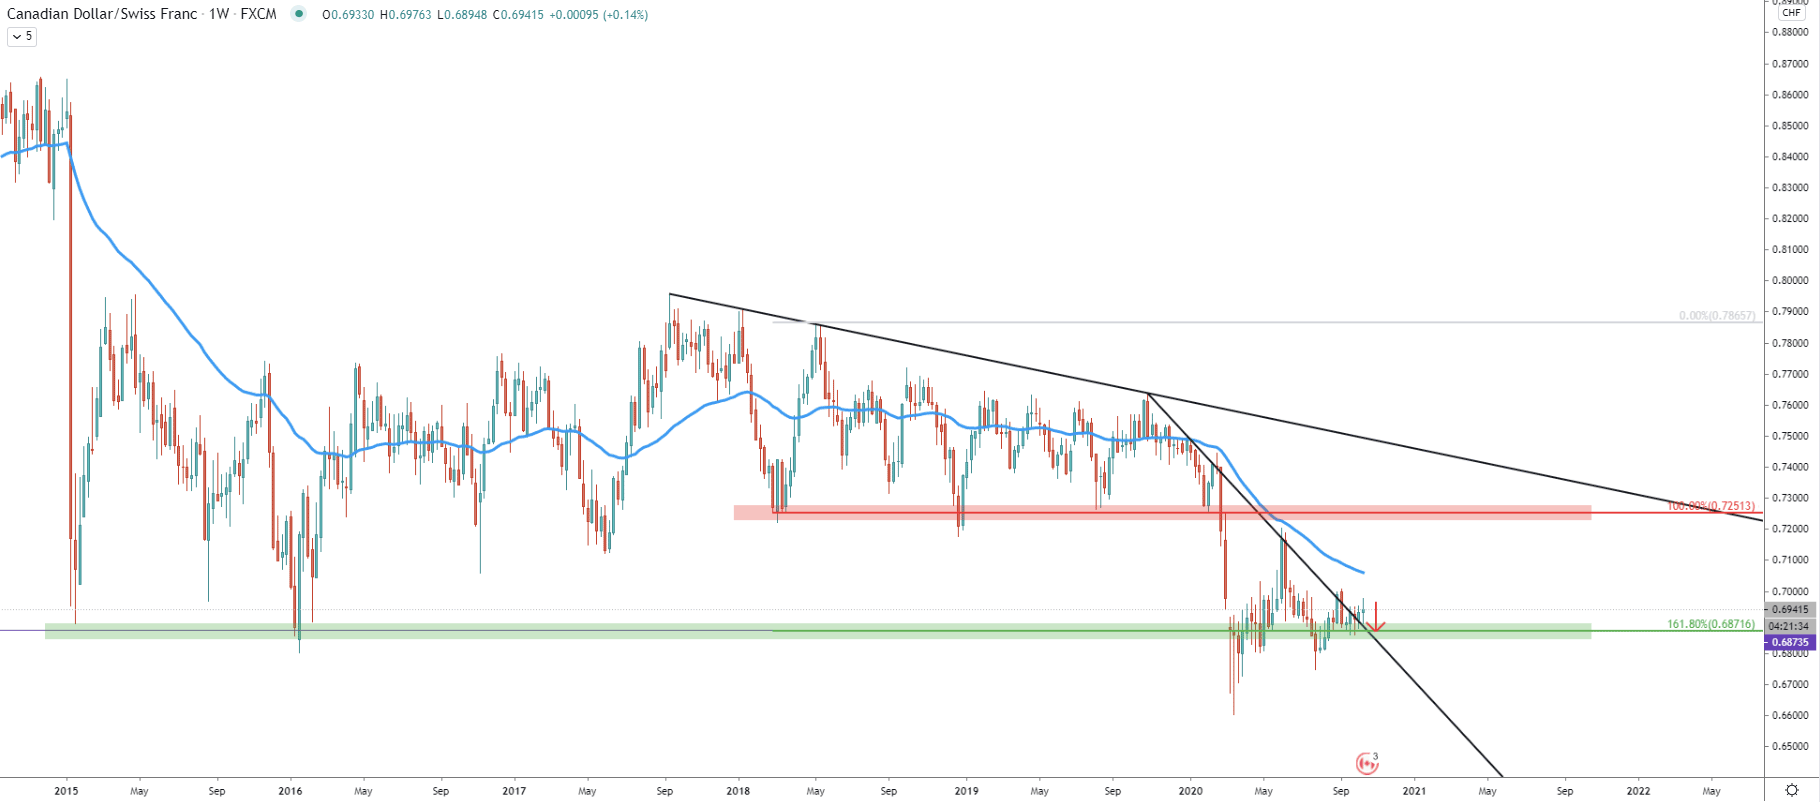 CAD/CHF Weekly Technical Analysis 16 Oct 2020